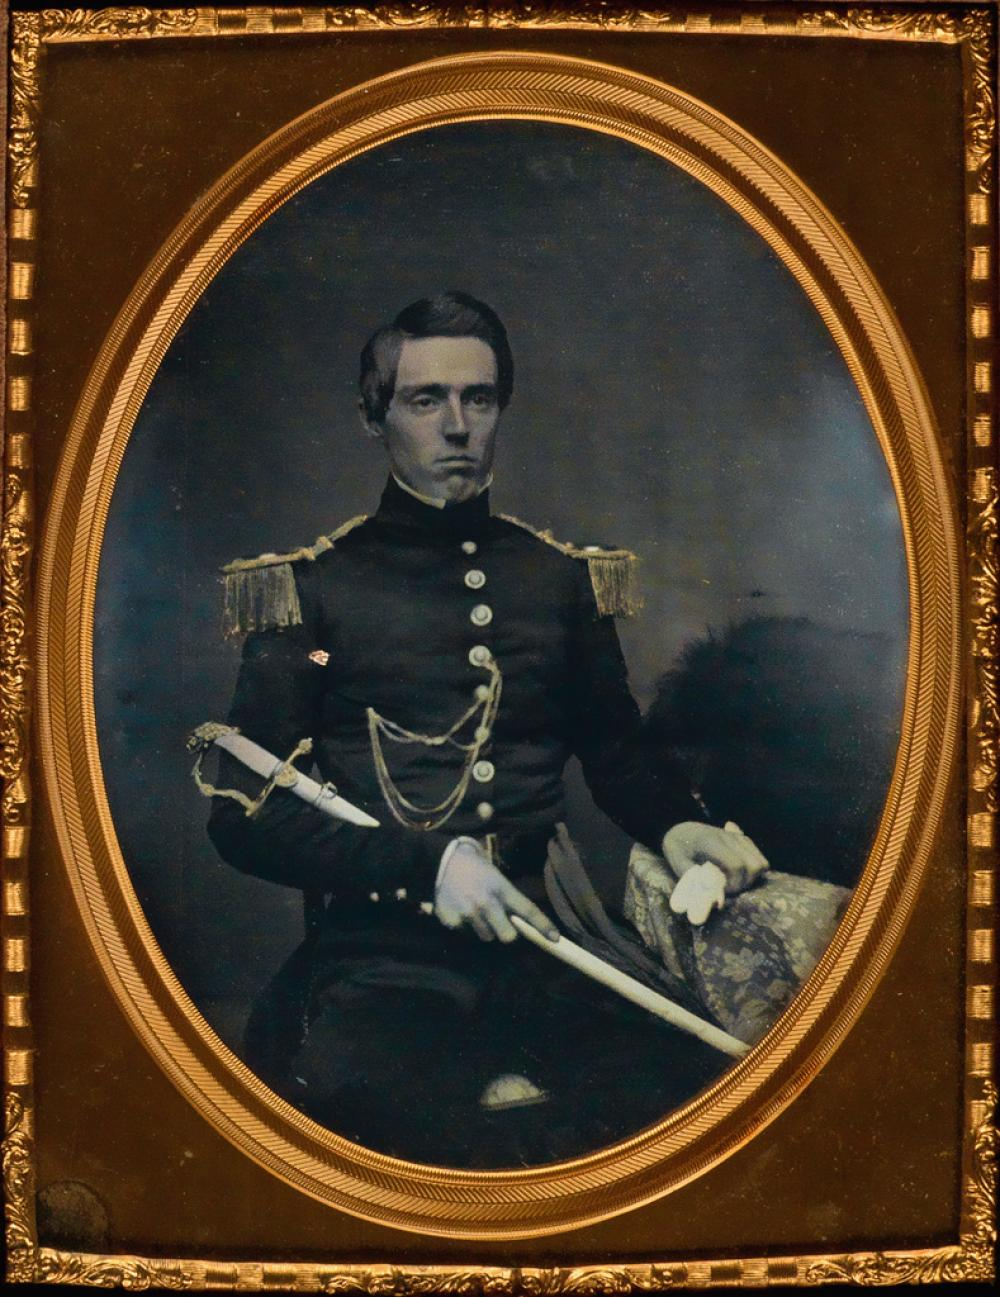 (AMERICAN MILITARY) Half-plate daguerreotype of Roland G. Usher (1823-1895).